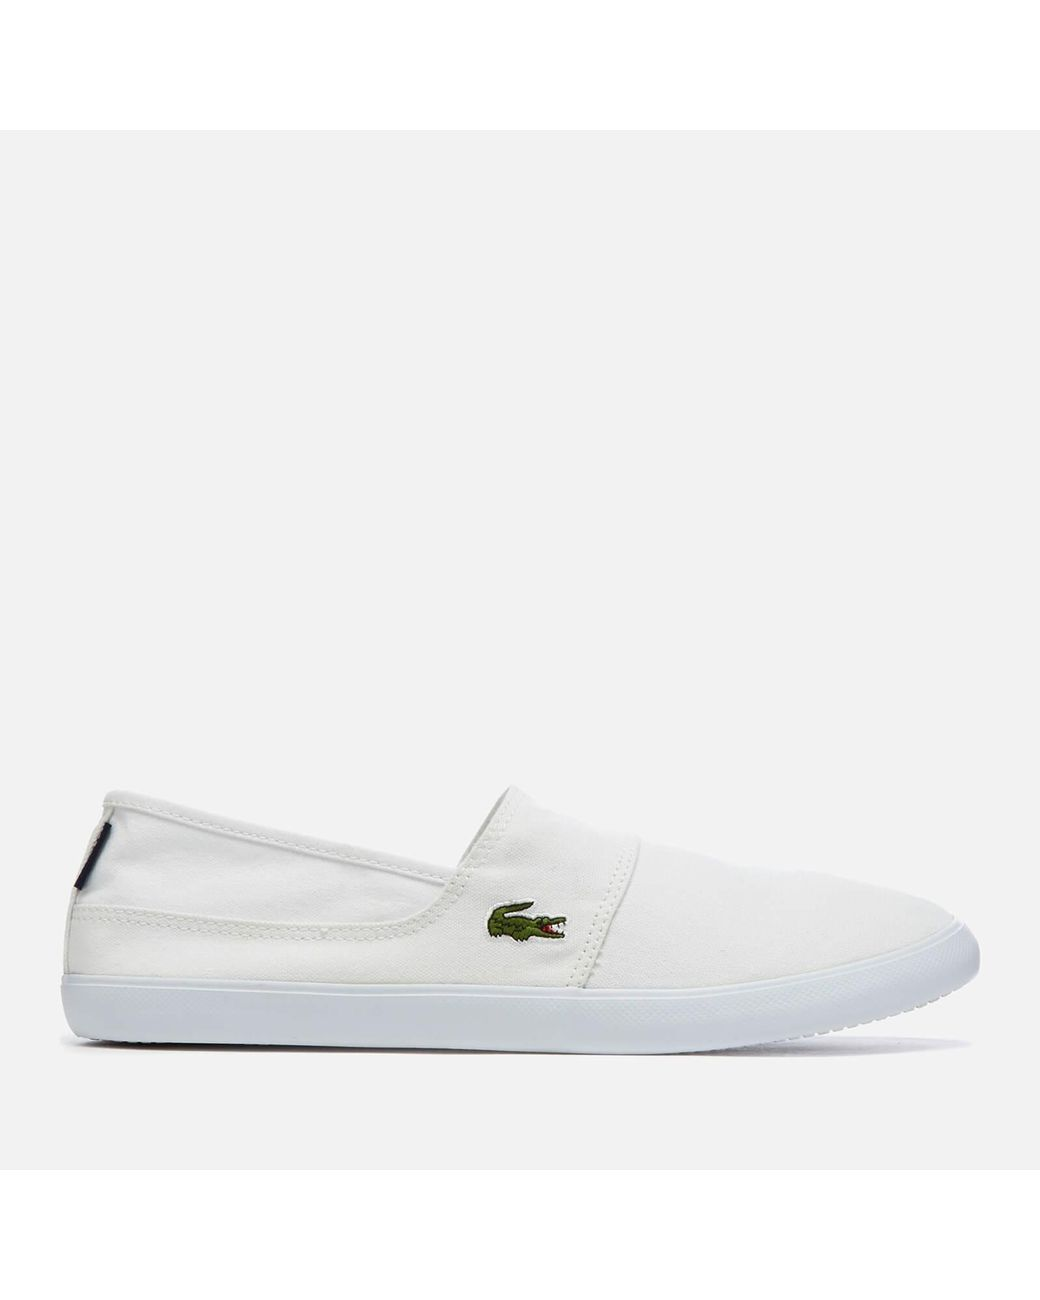 1c752b67b9ac Lyst - Lacoste Marice Bl 2 Canvas Slip-on Pumps in White for Men